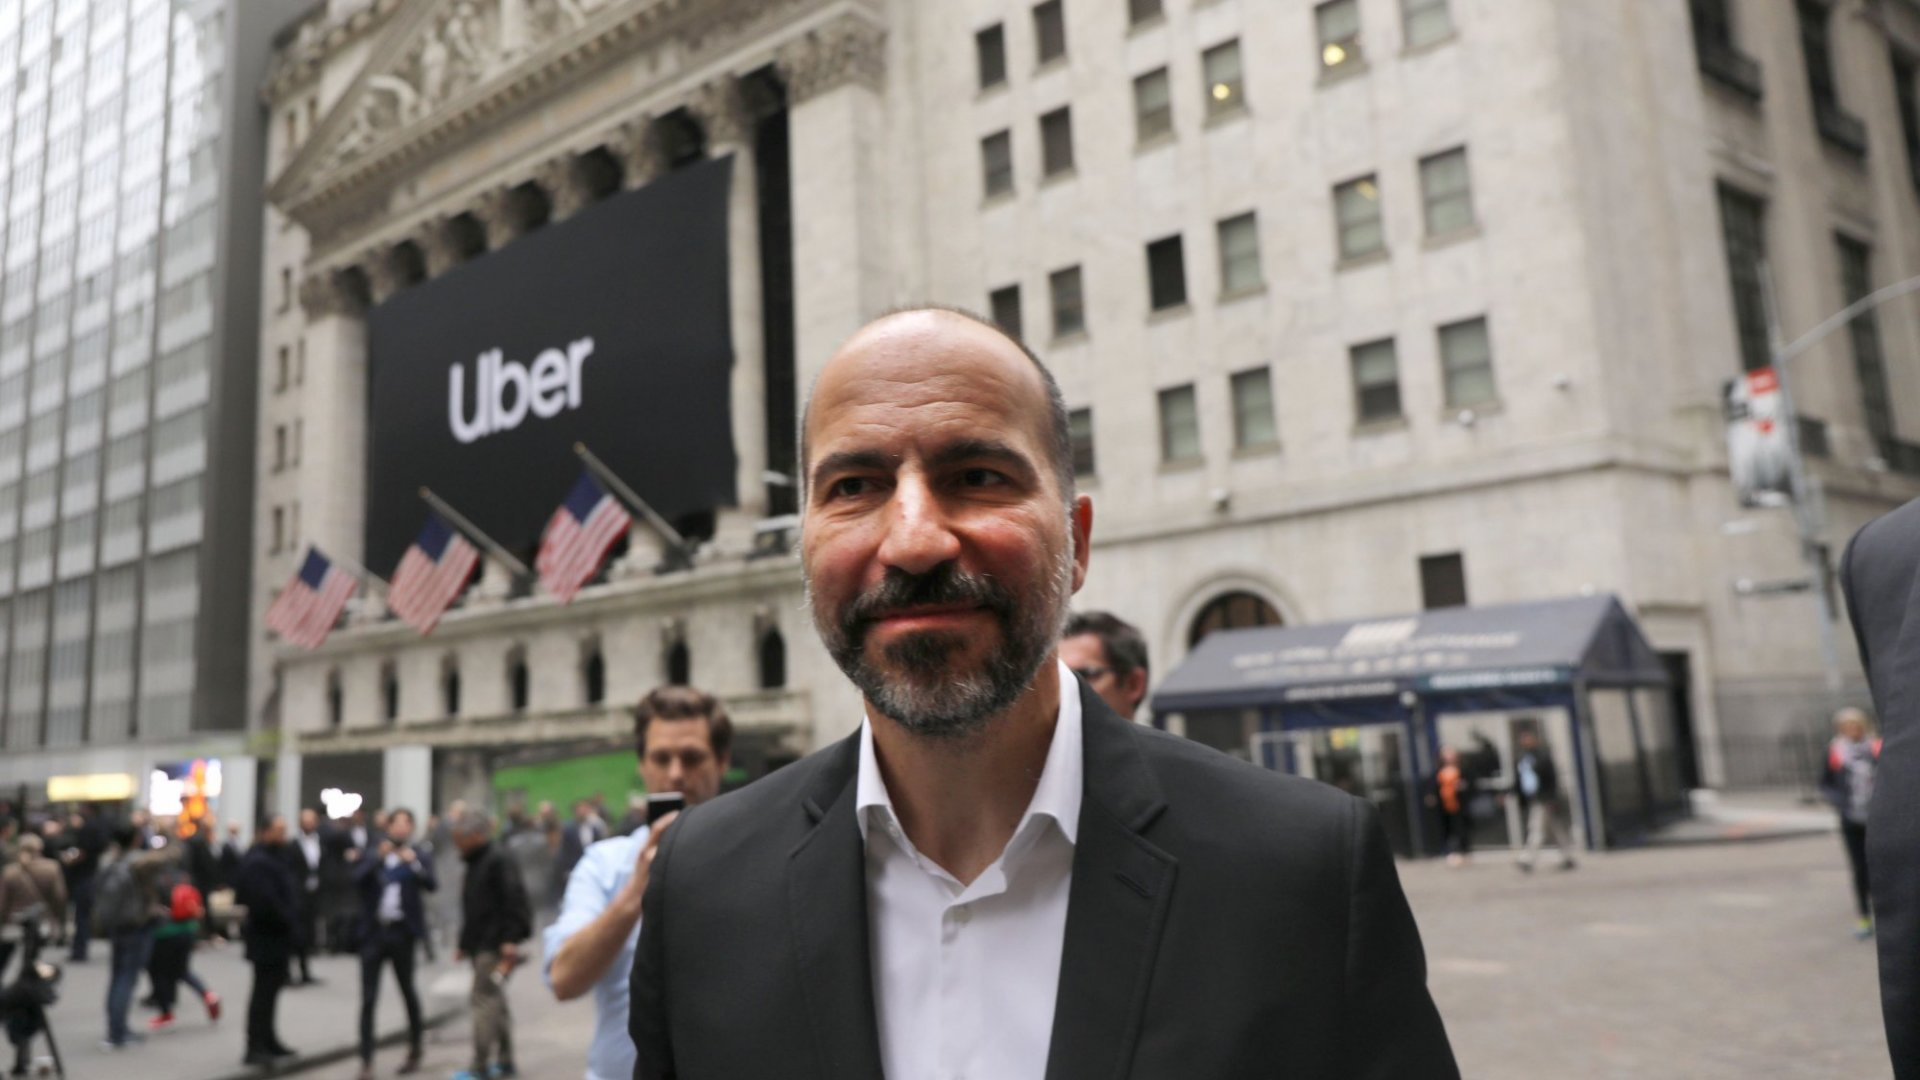 Uber's CEO Made a Huge Mistake, and It Just May Signal the End of Uber